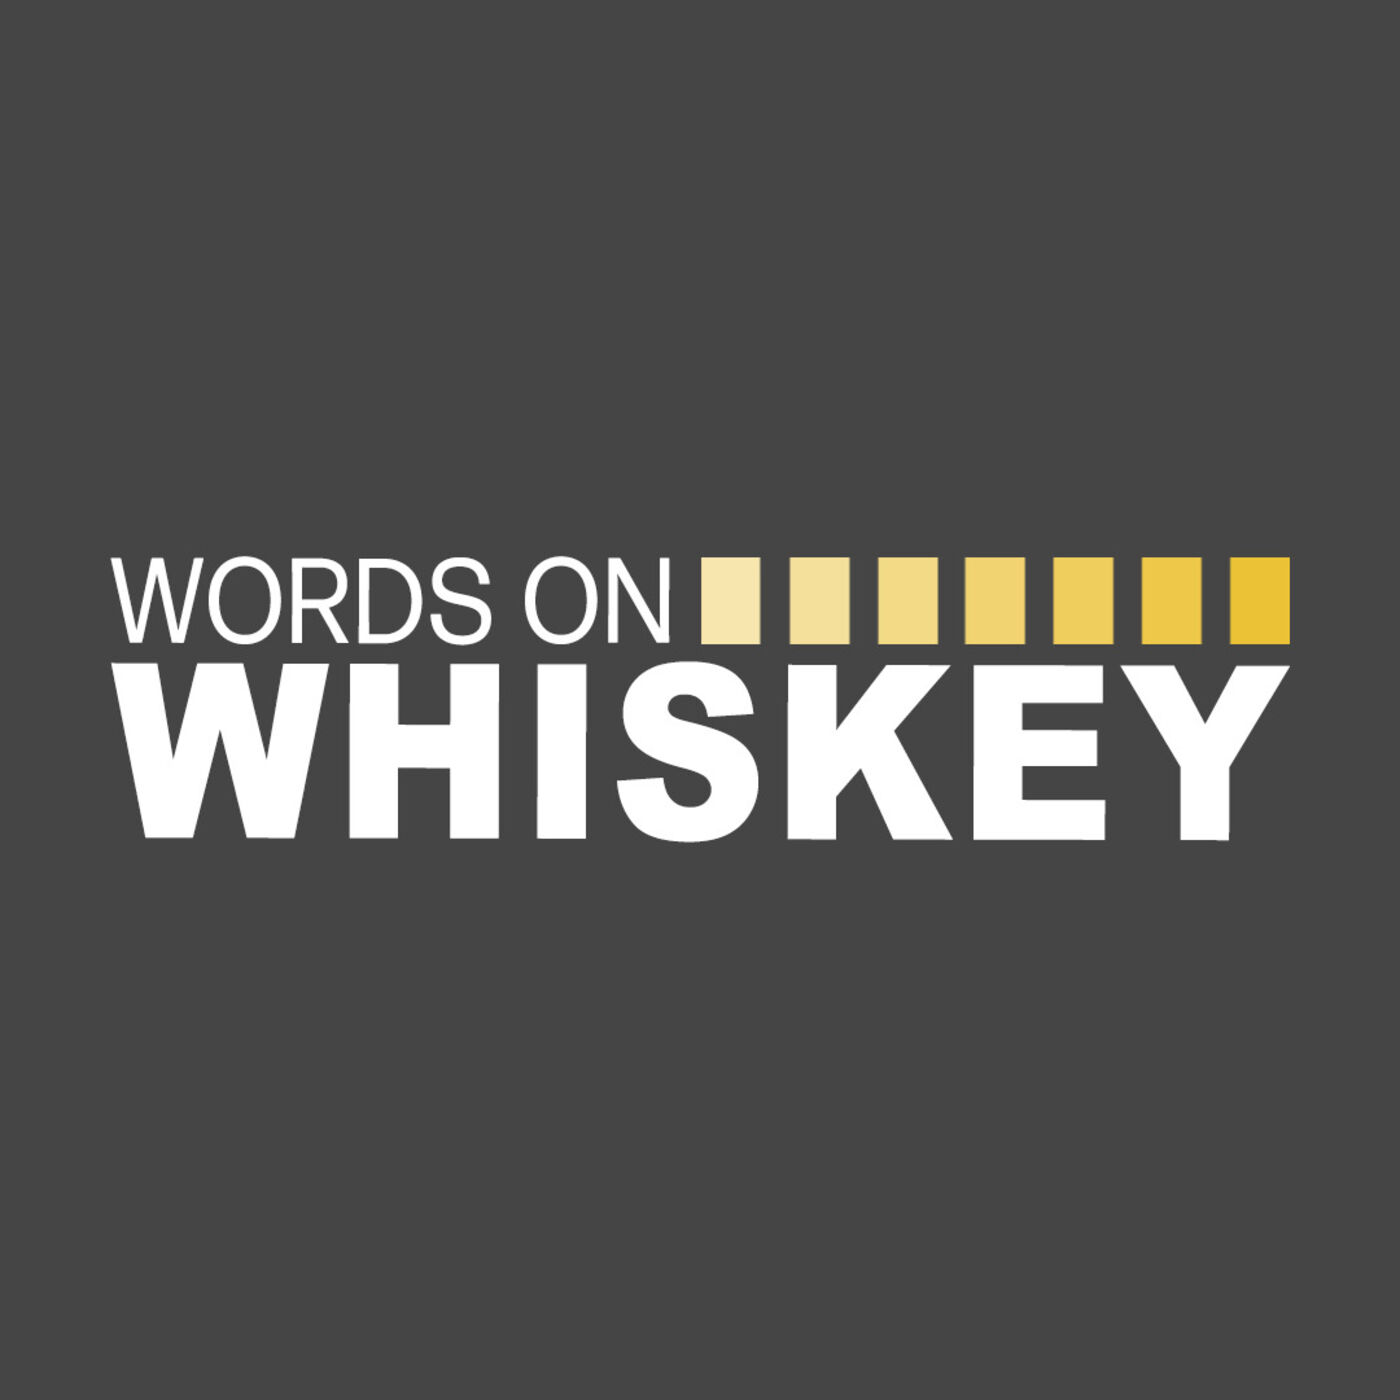 Words on Whiskey